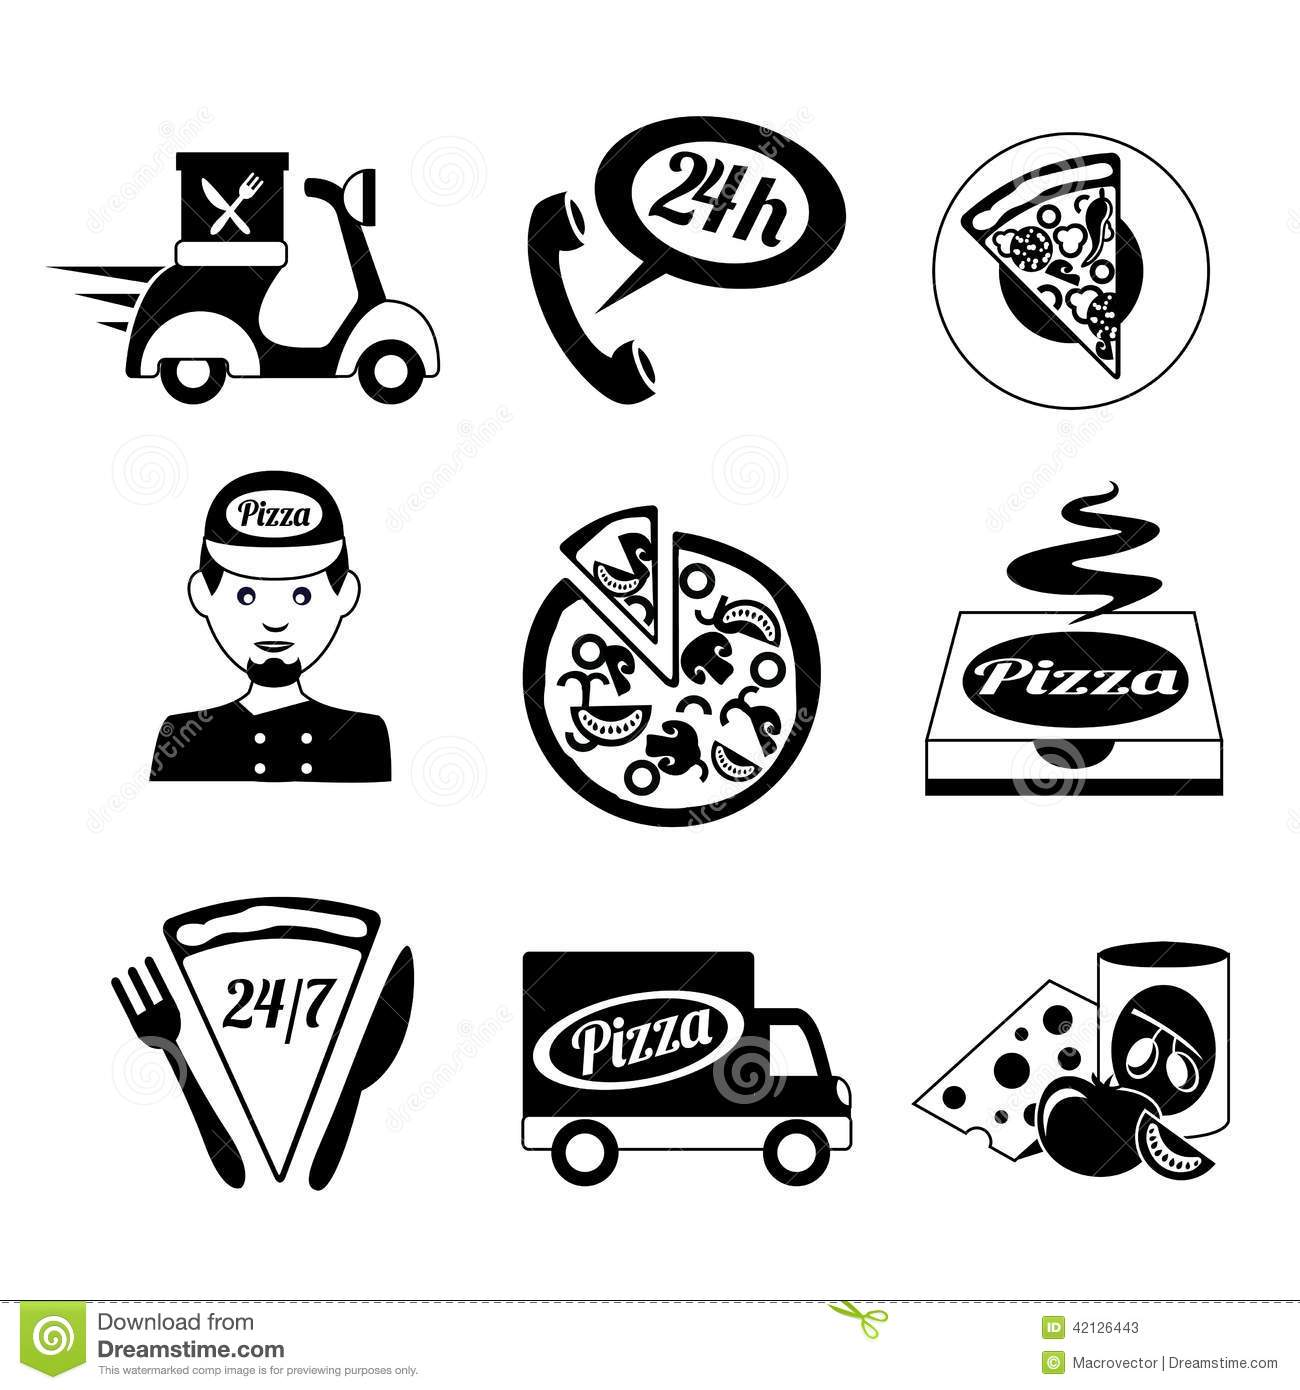 Fast Food Icon Black and White